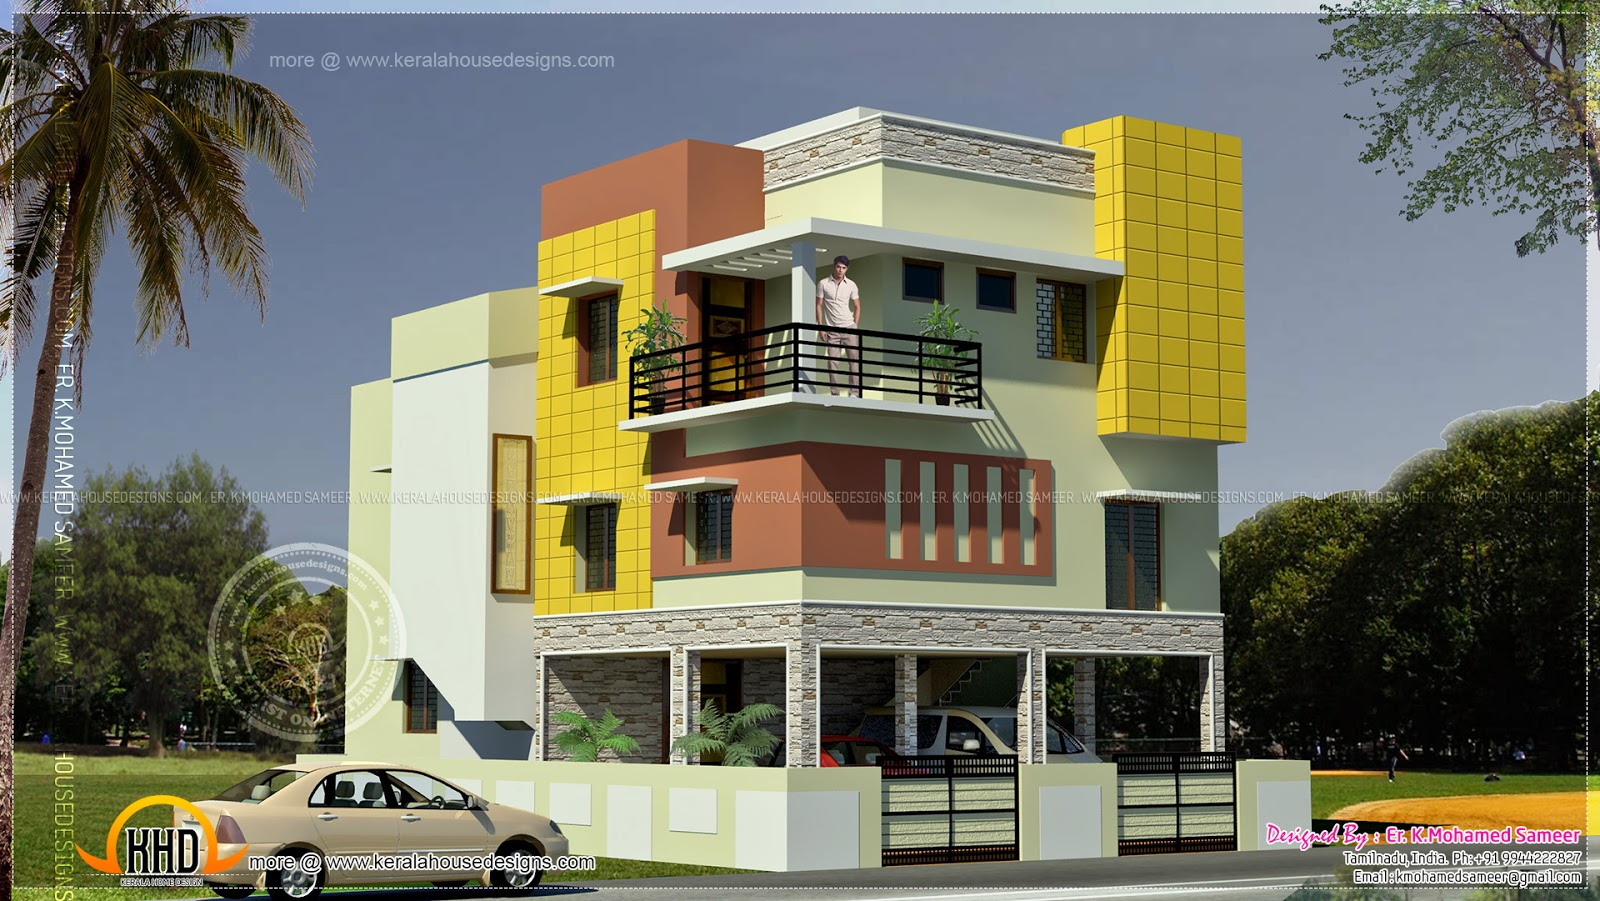 Duplex house in tamilnadu kerala home design and floor plans for Tamilnadu home design photos